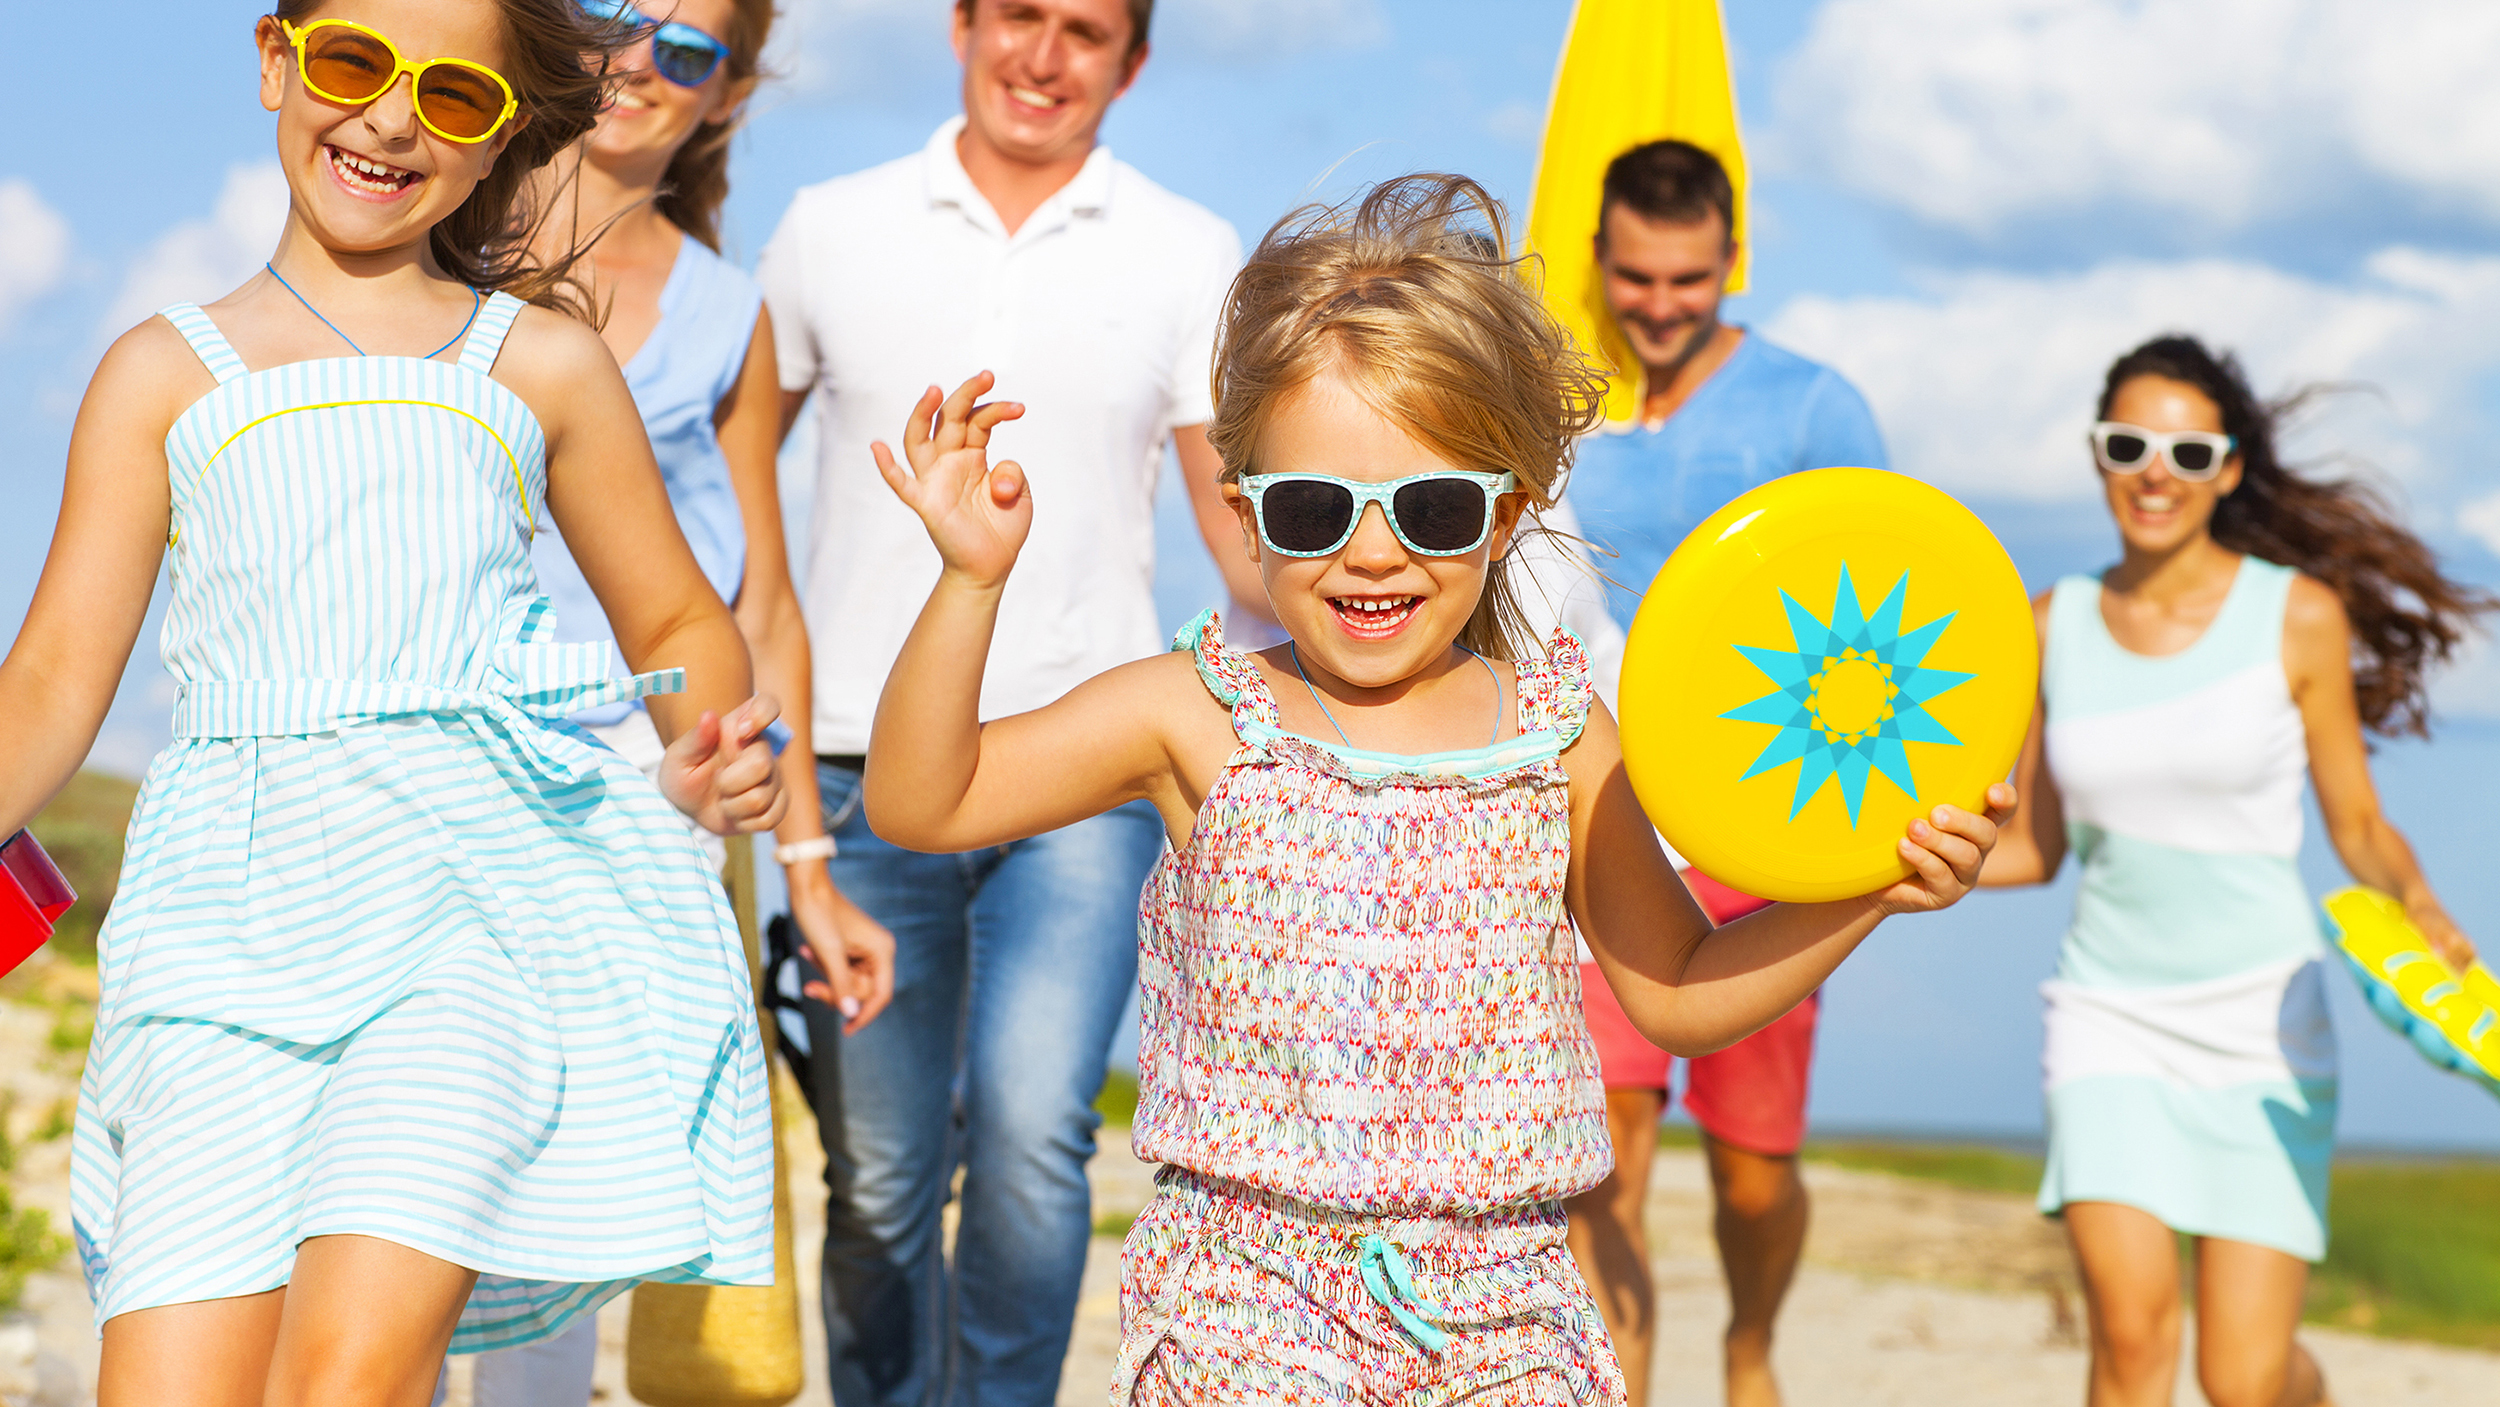 4 Summer Fashion Trends For The Whole Family To Try